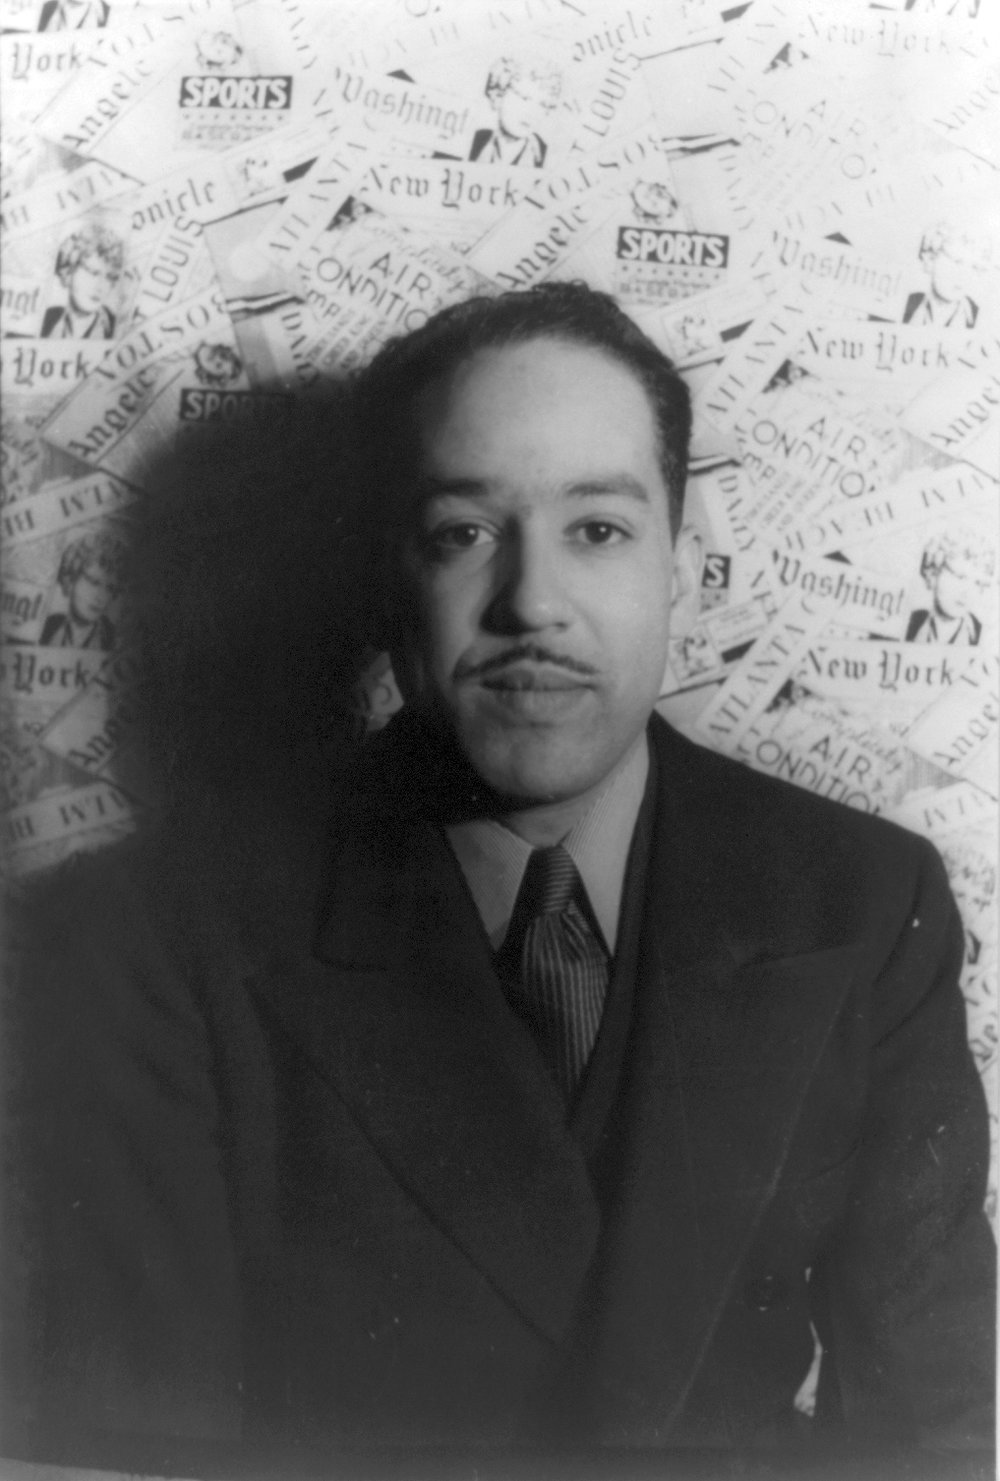 Langston Hughes photographed by Carl Van Vechten (Source: Wikimedia)